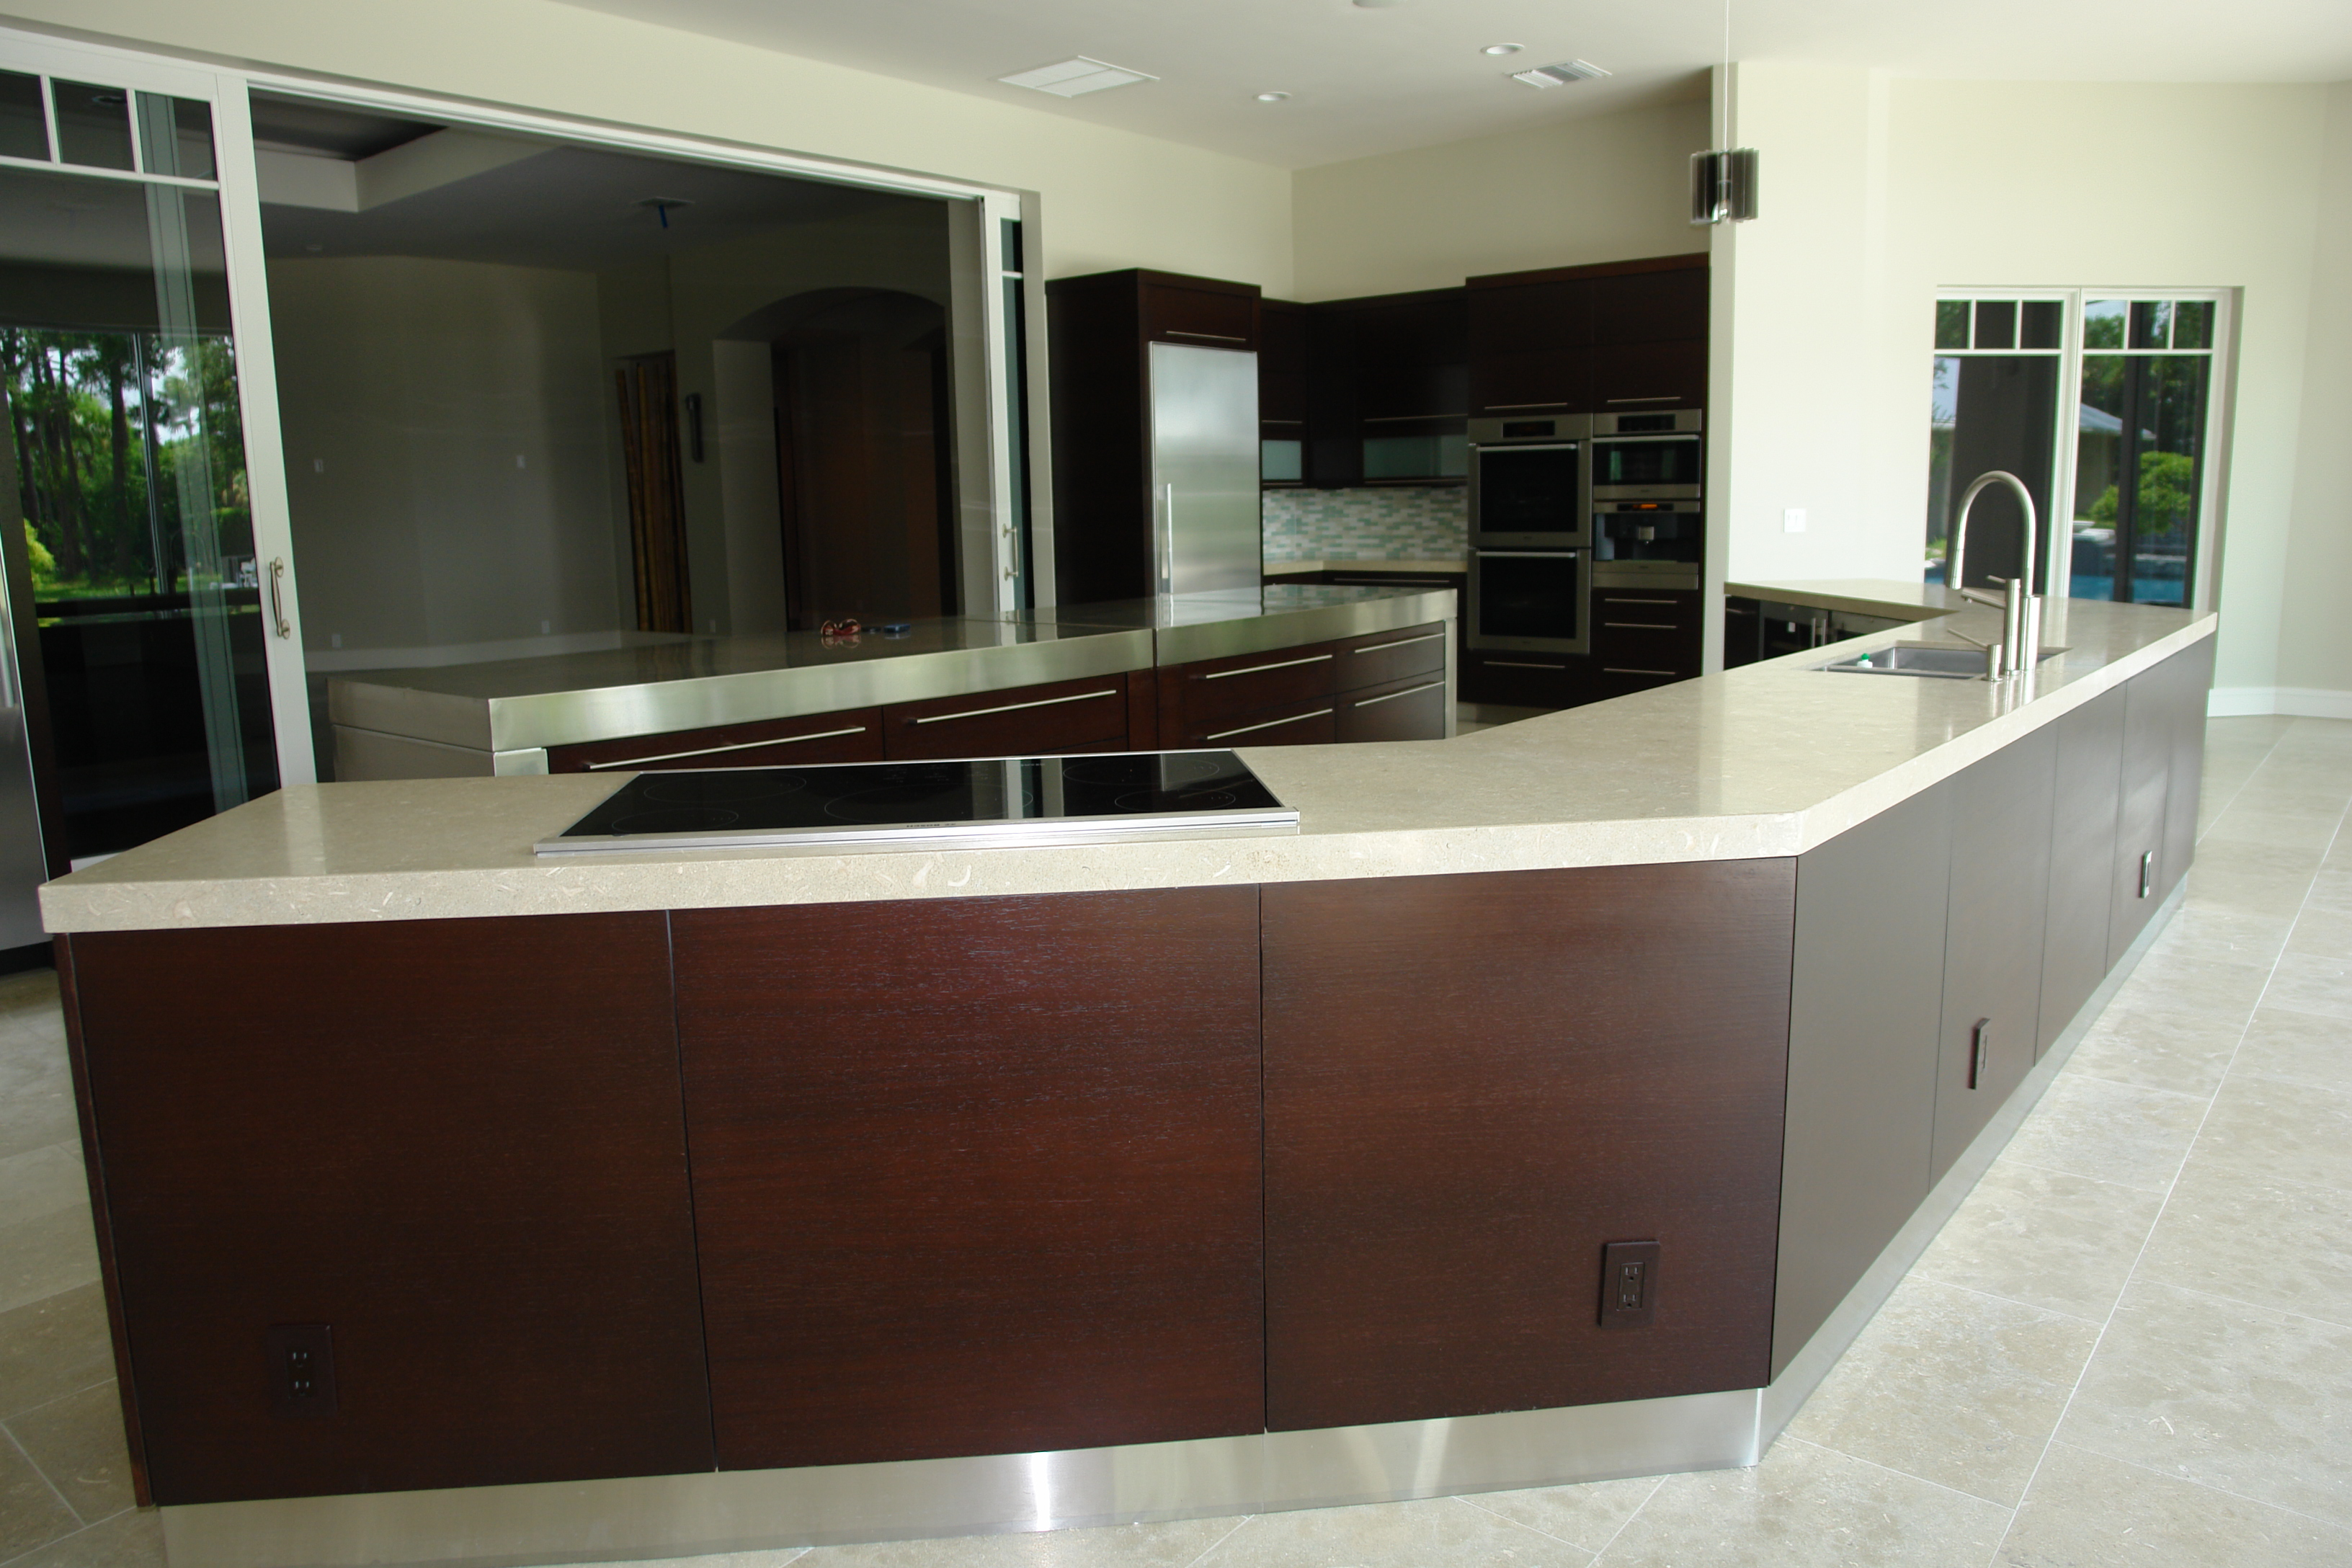 nantucket polar white kitchen cabinets custom cabinets fort lauderdale image cabinets and 23659